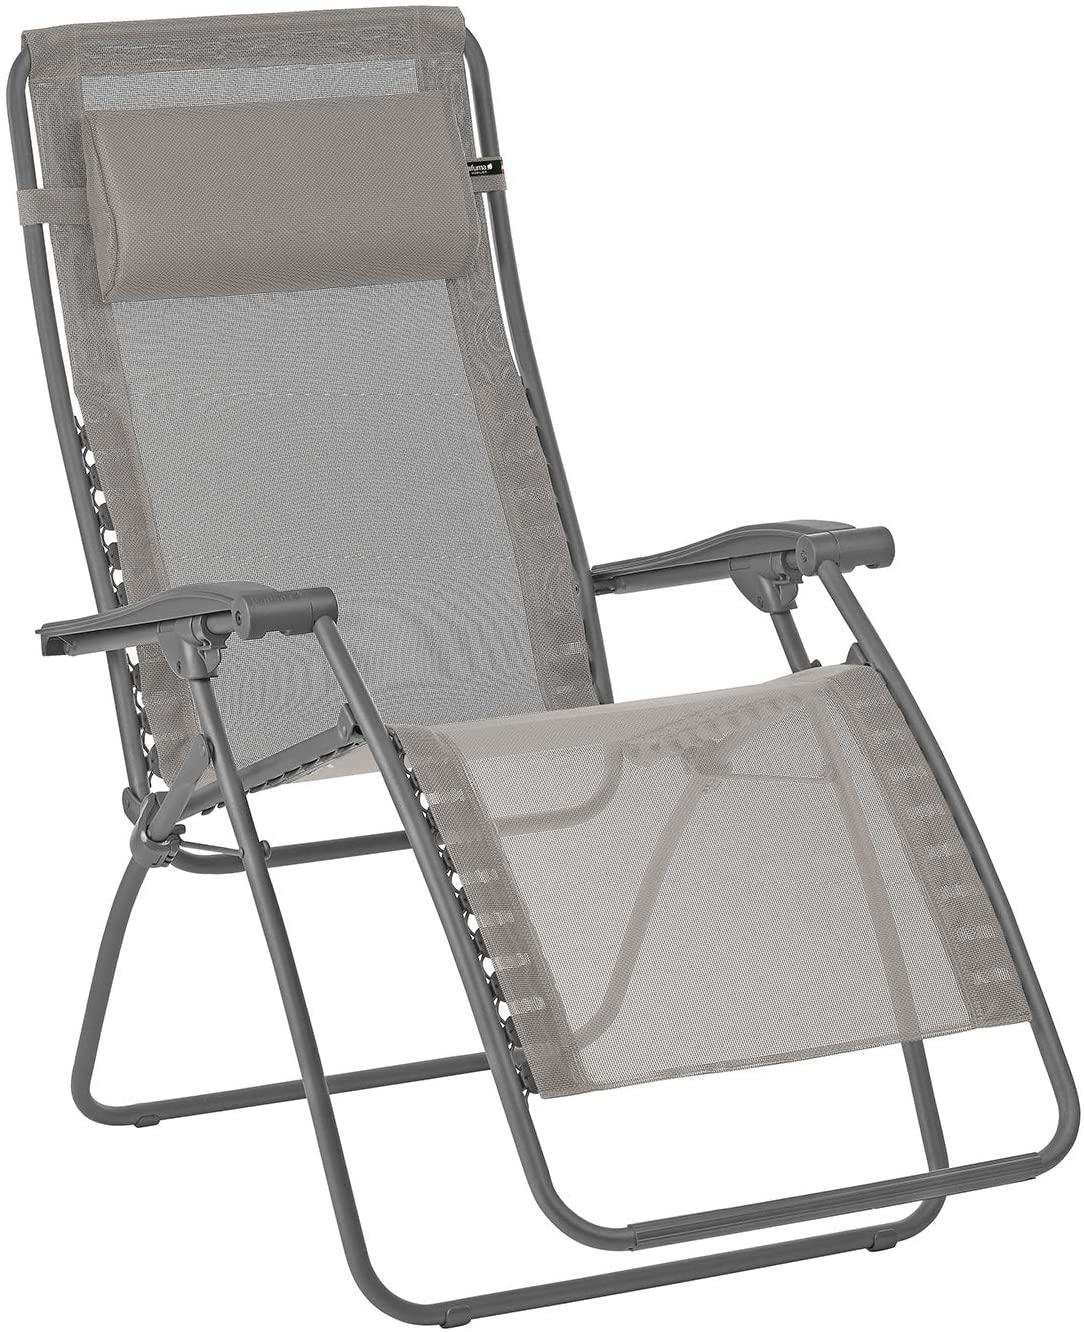 Deck Chair Rsxa-Clip Met/Titane Text/Terre 8556